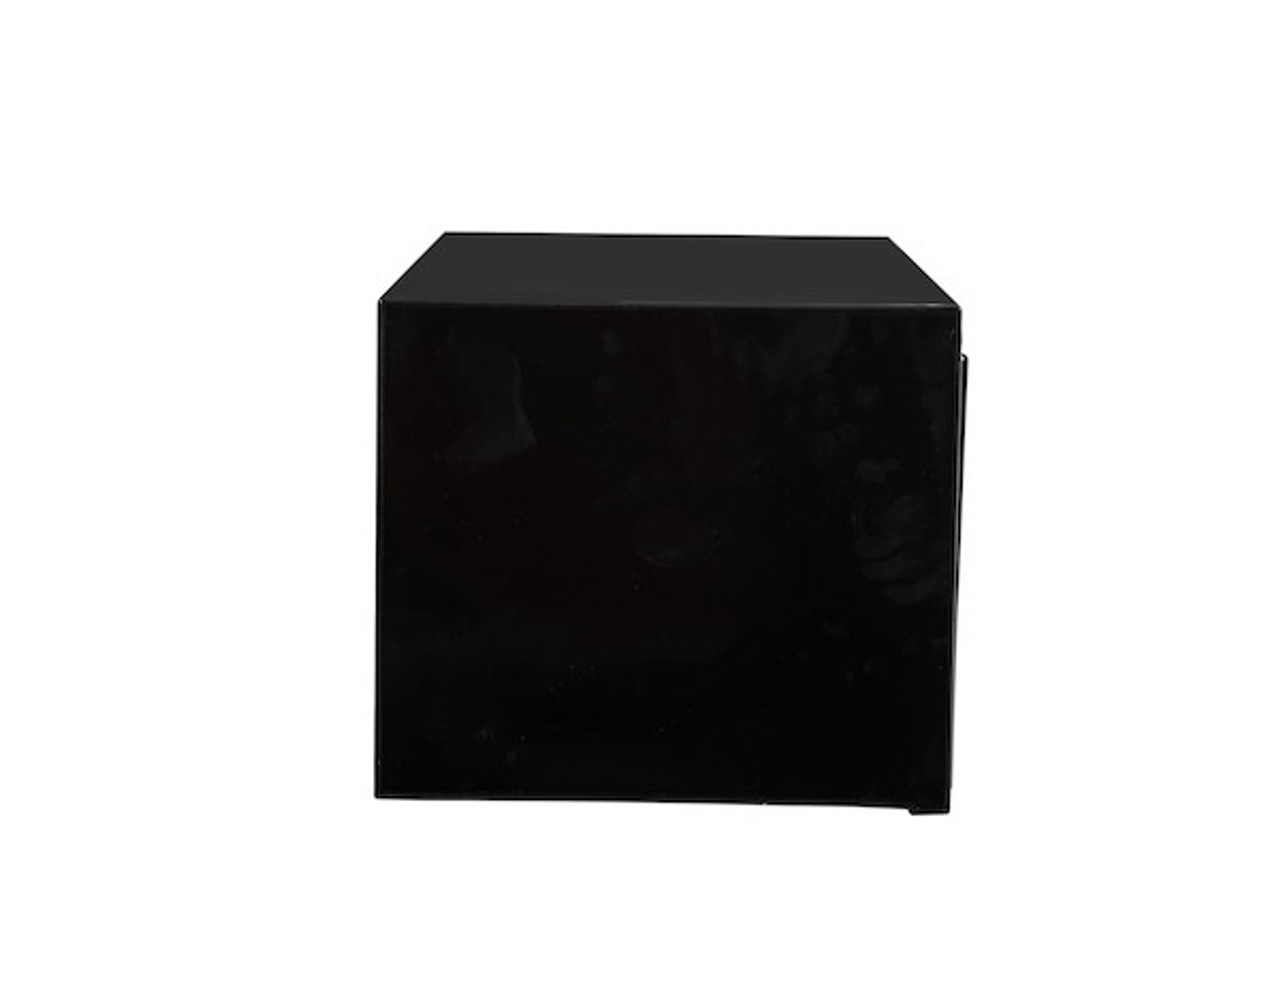 """1703304 BUYERS PRODUCTS BLACK STEEL UNDERBODY TRUCK TOOL BOX WITH BUILT-IN SHELF 14""""HX16""""DX30""""W Picture # 9"""